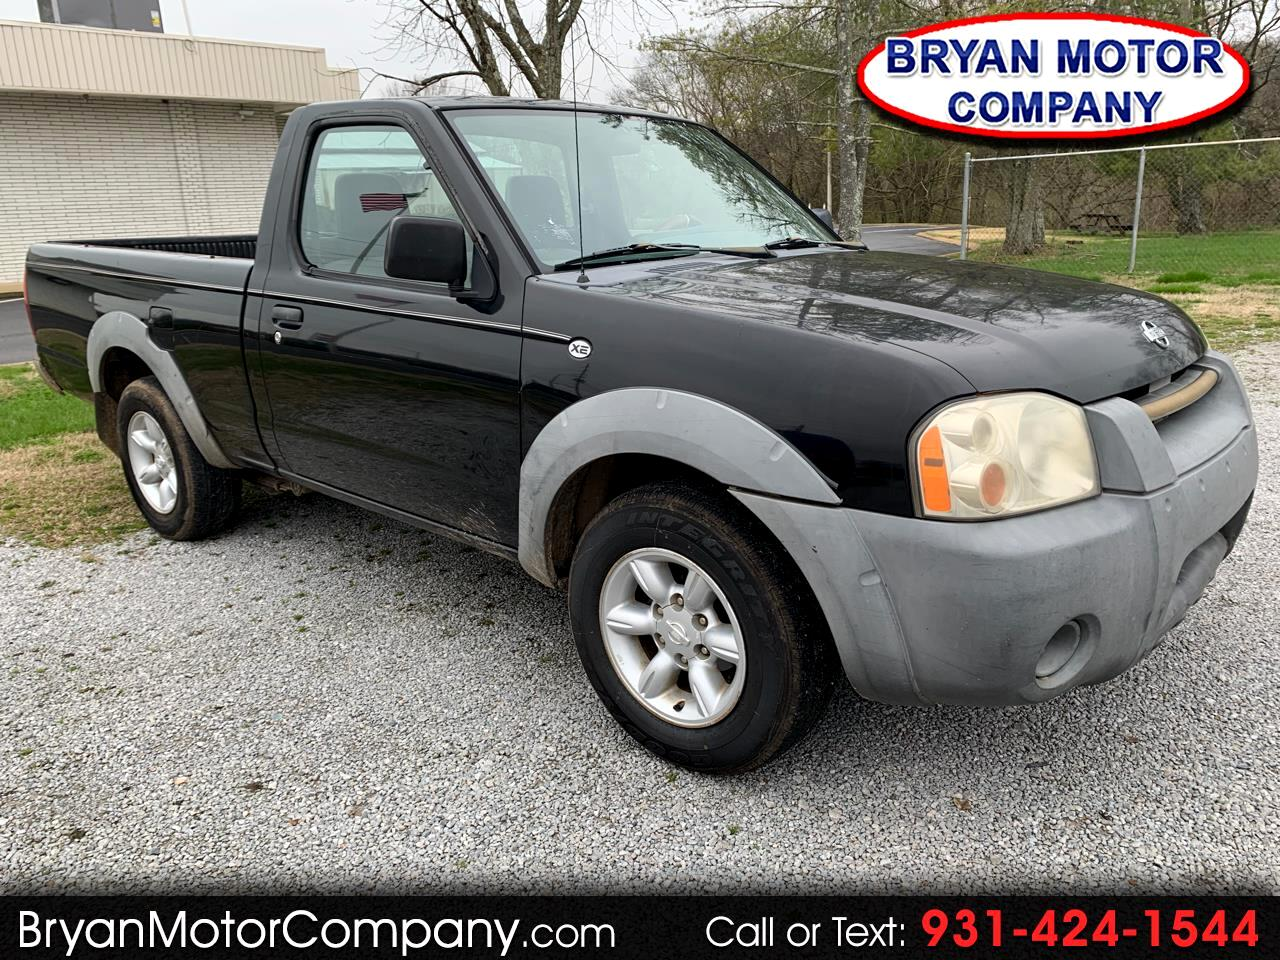 2001 Nissan Frontier 2WD XE Reg Cab I4 Manual